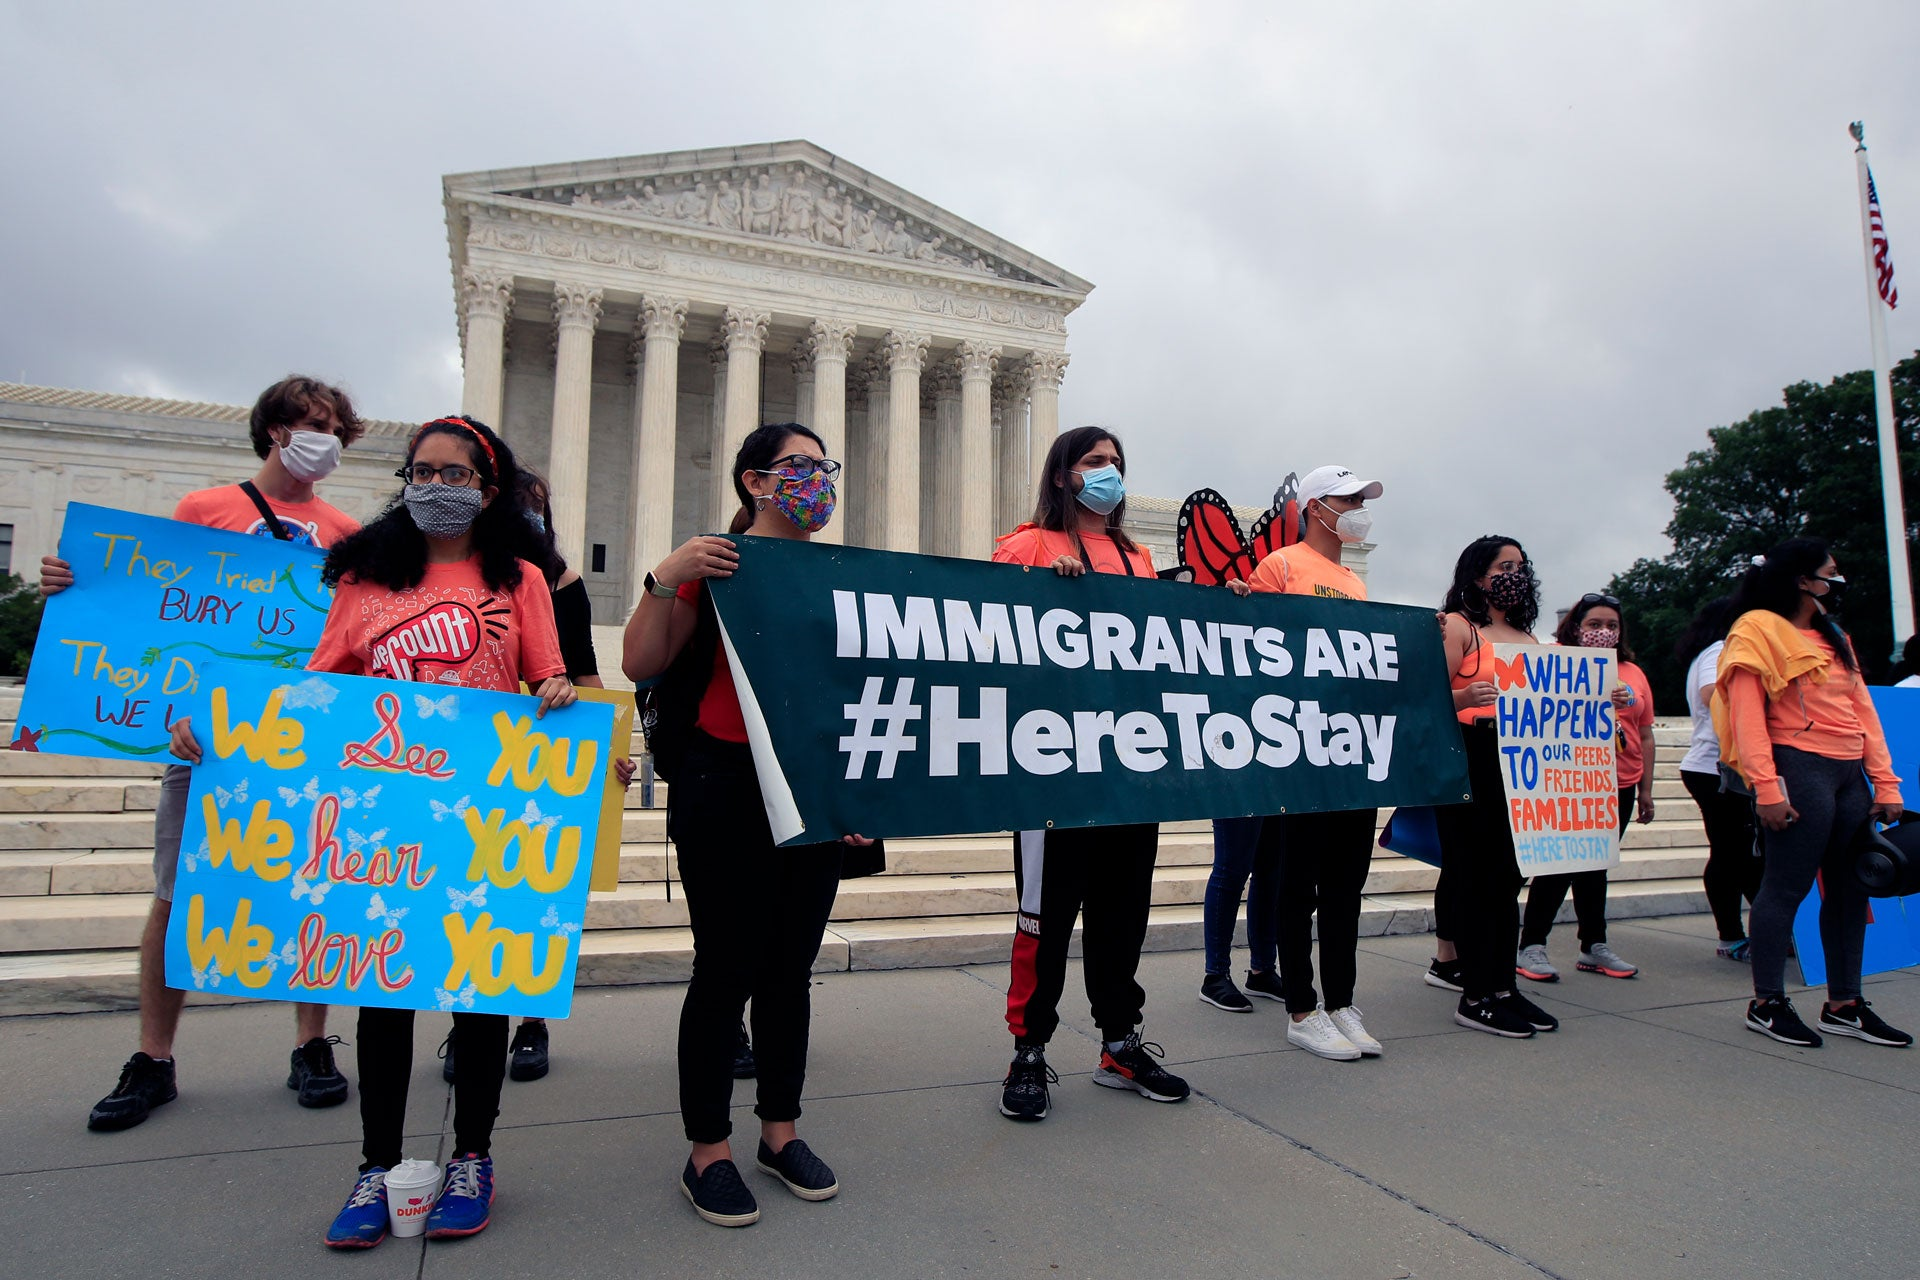 57 Civil and Human Rights Organizations Urge Biden Administration and Congress to Keep a Pathway to Citizenship for Immigrants in Budget Reconciliation Bill